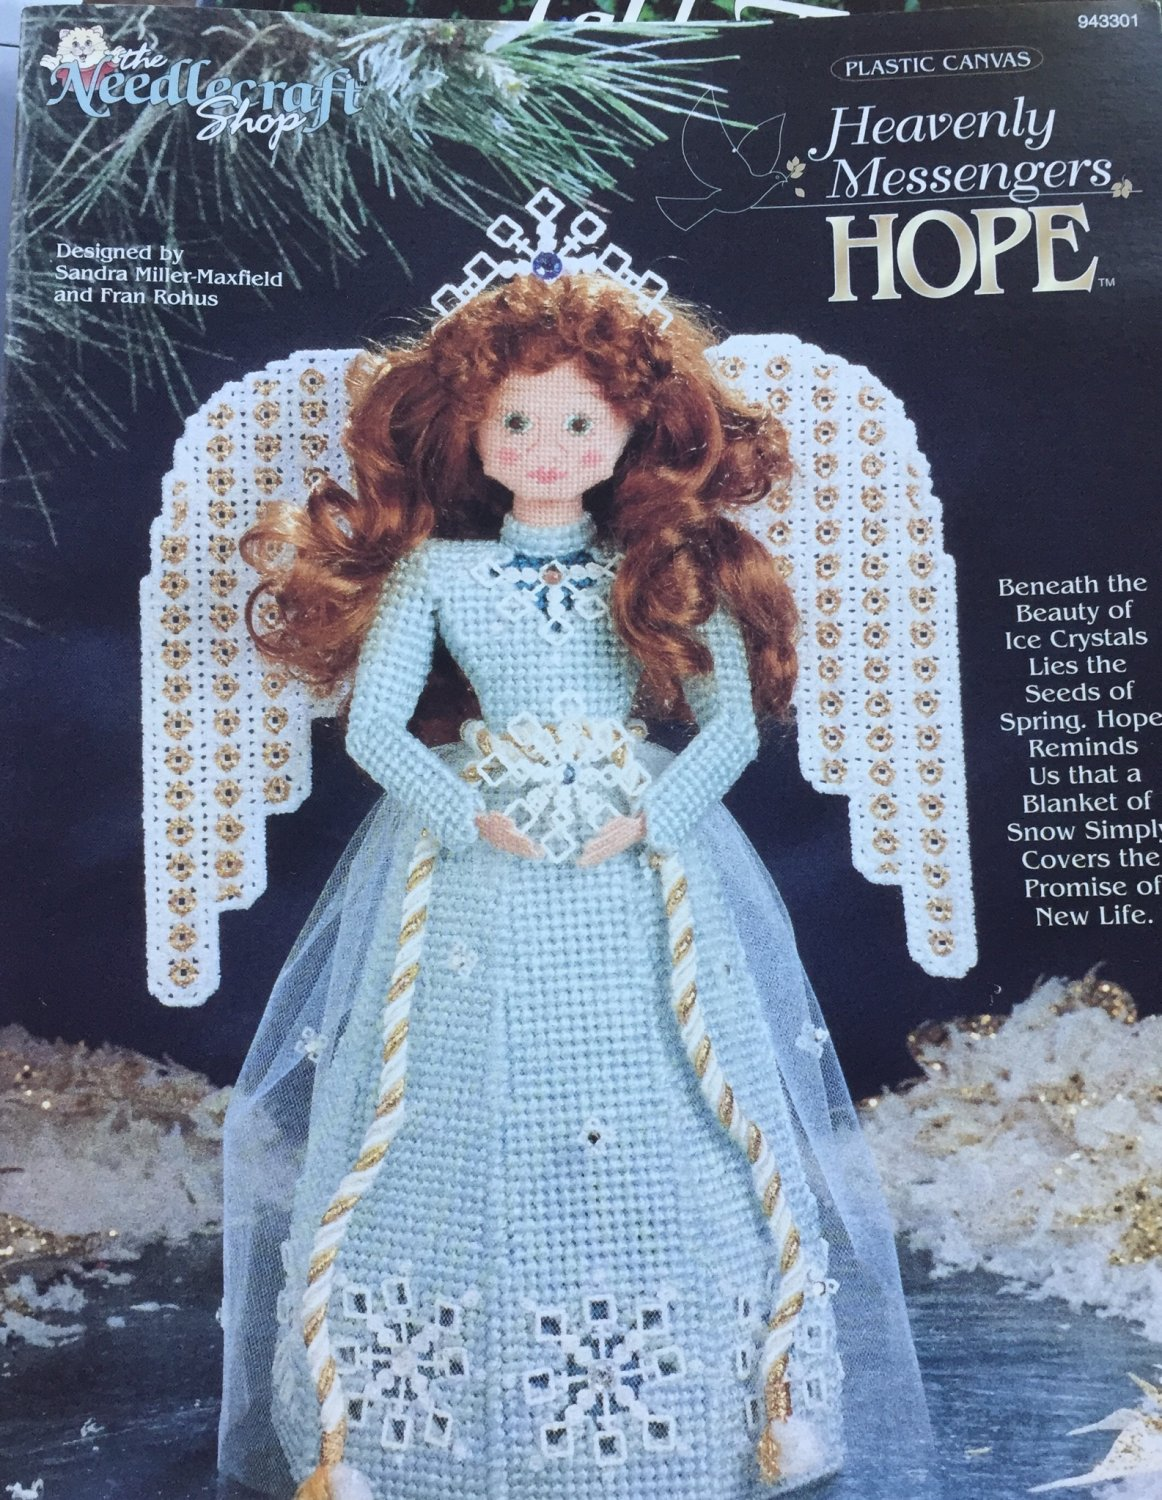 Angel Plastic Canvas Pattern Heavenly Messengers HOPE by The Needlecraft Shop